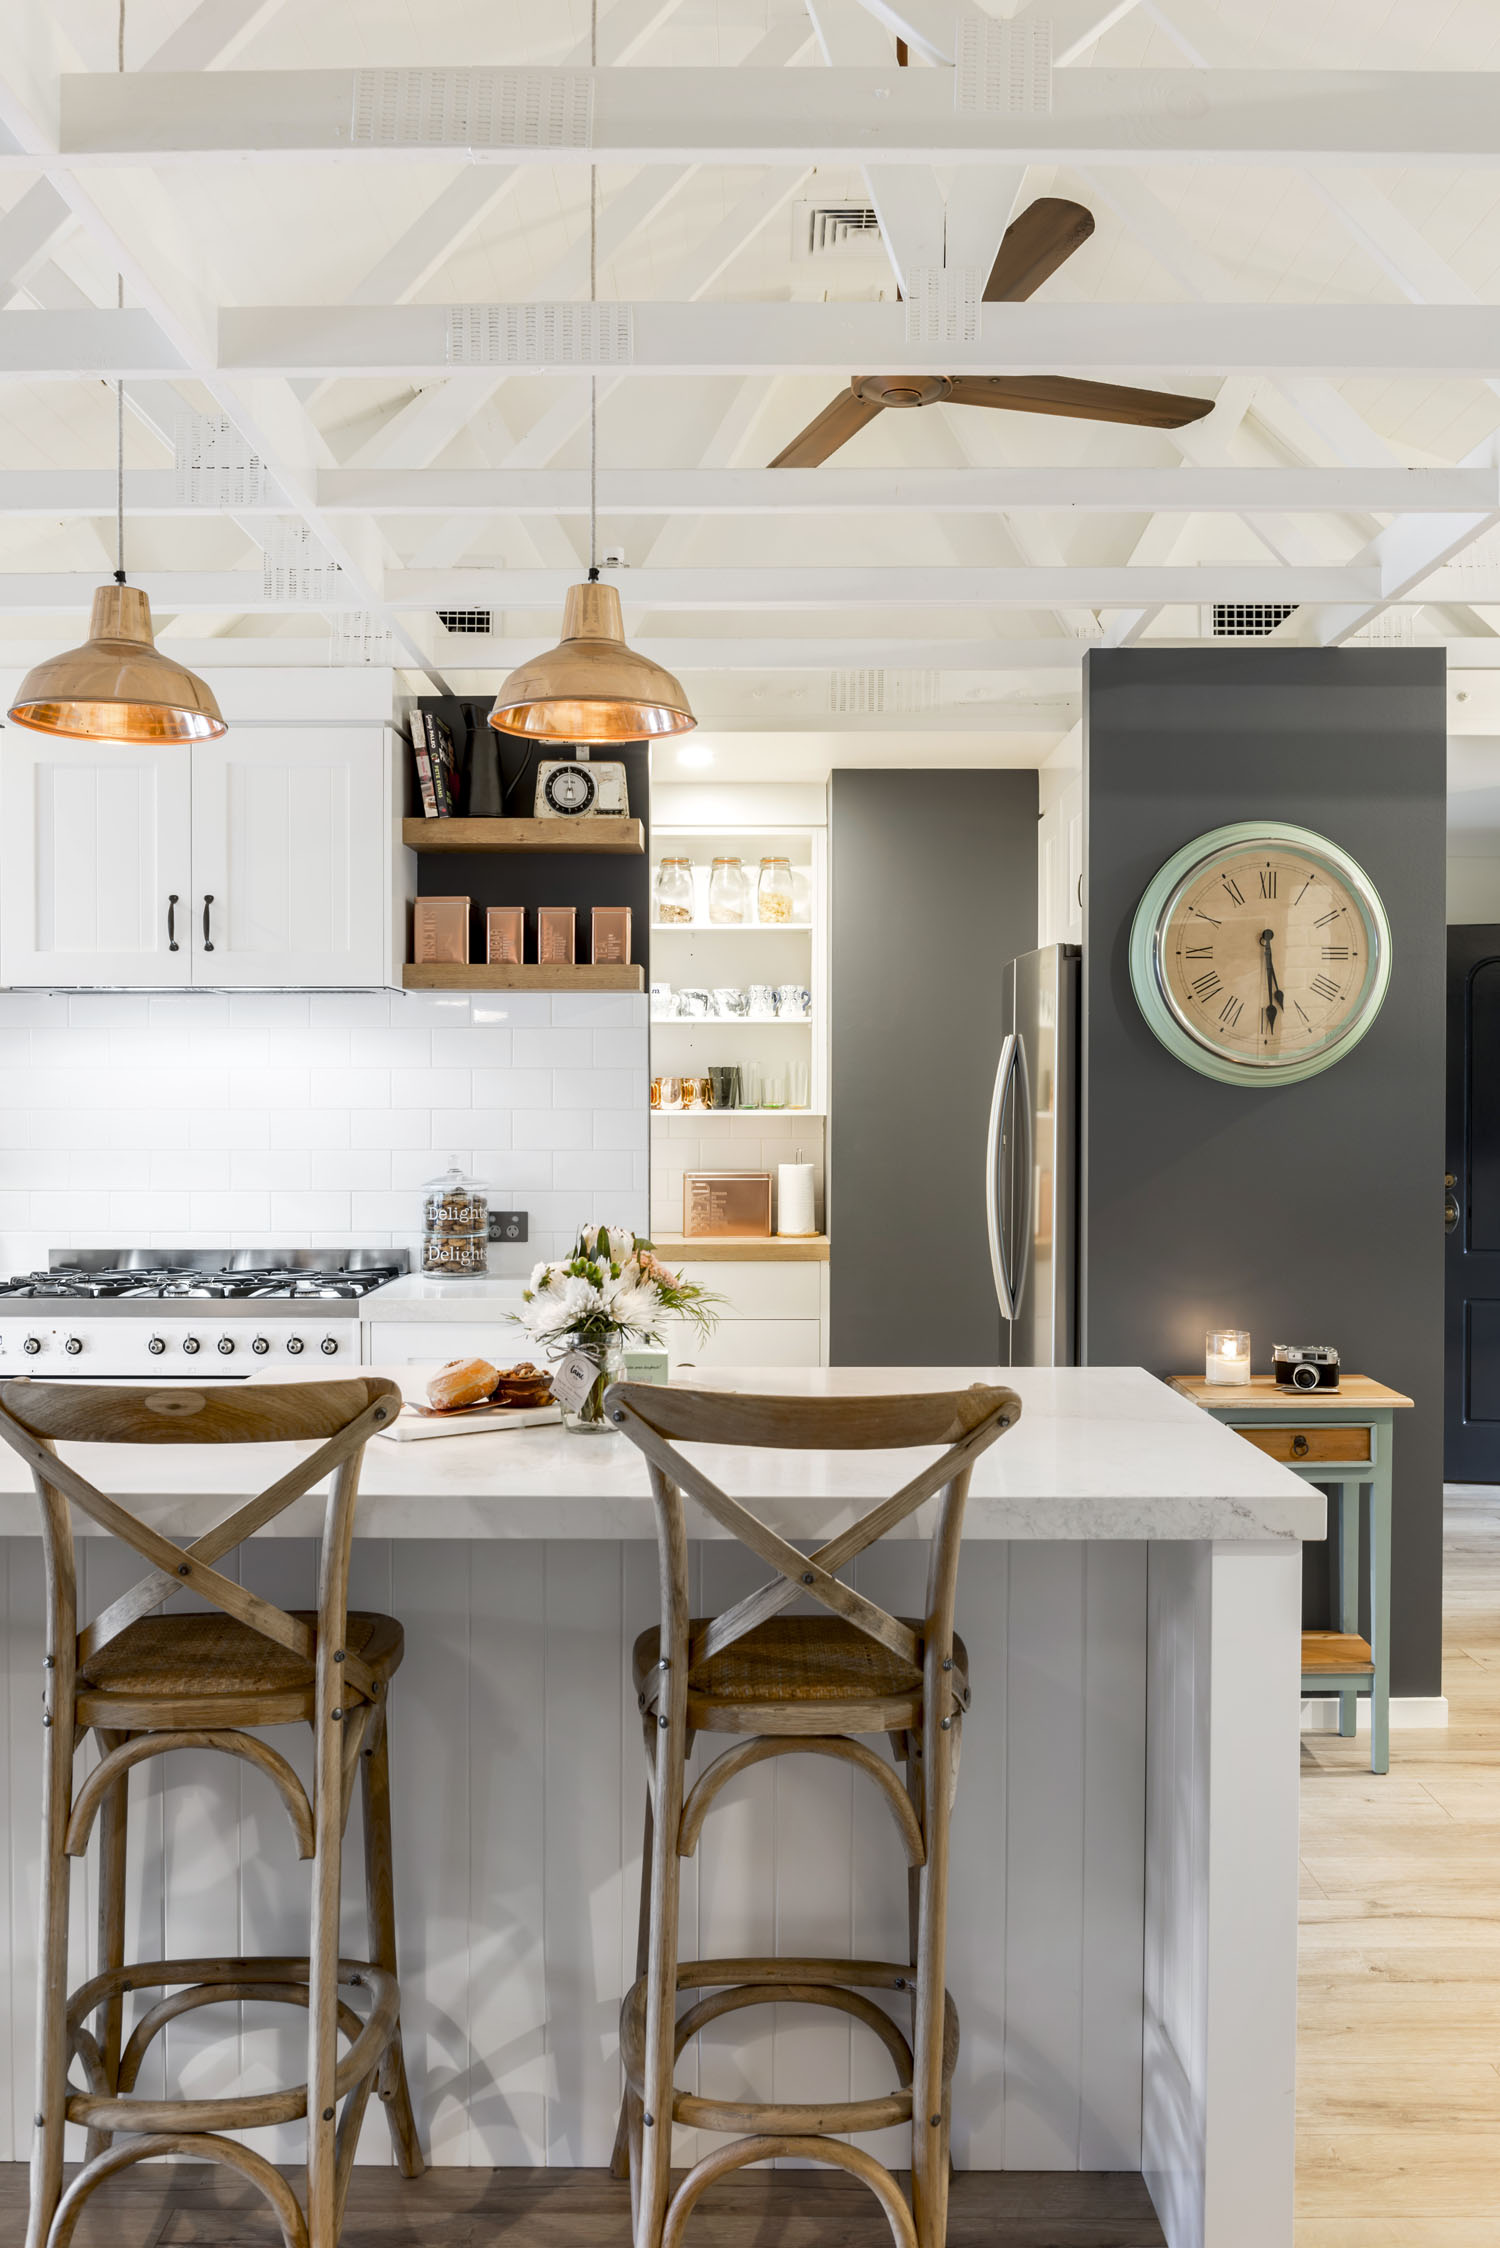 A kitchen with a touch of country